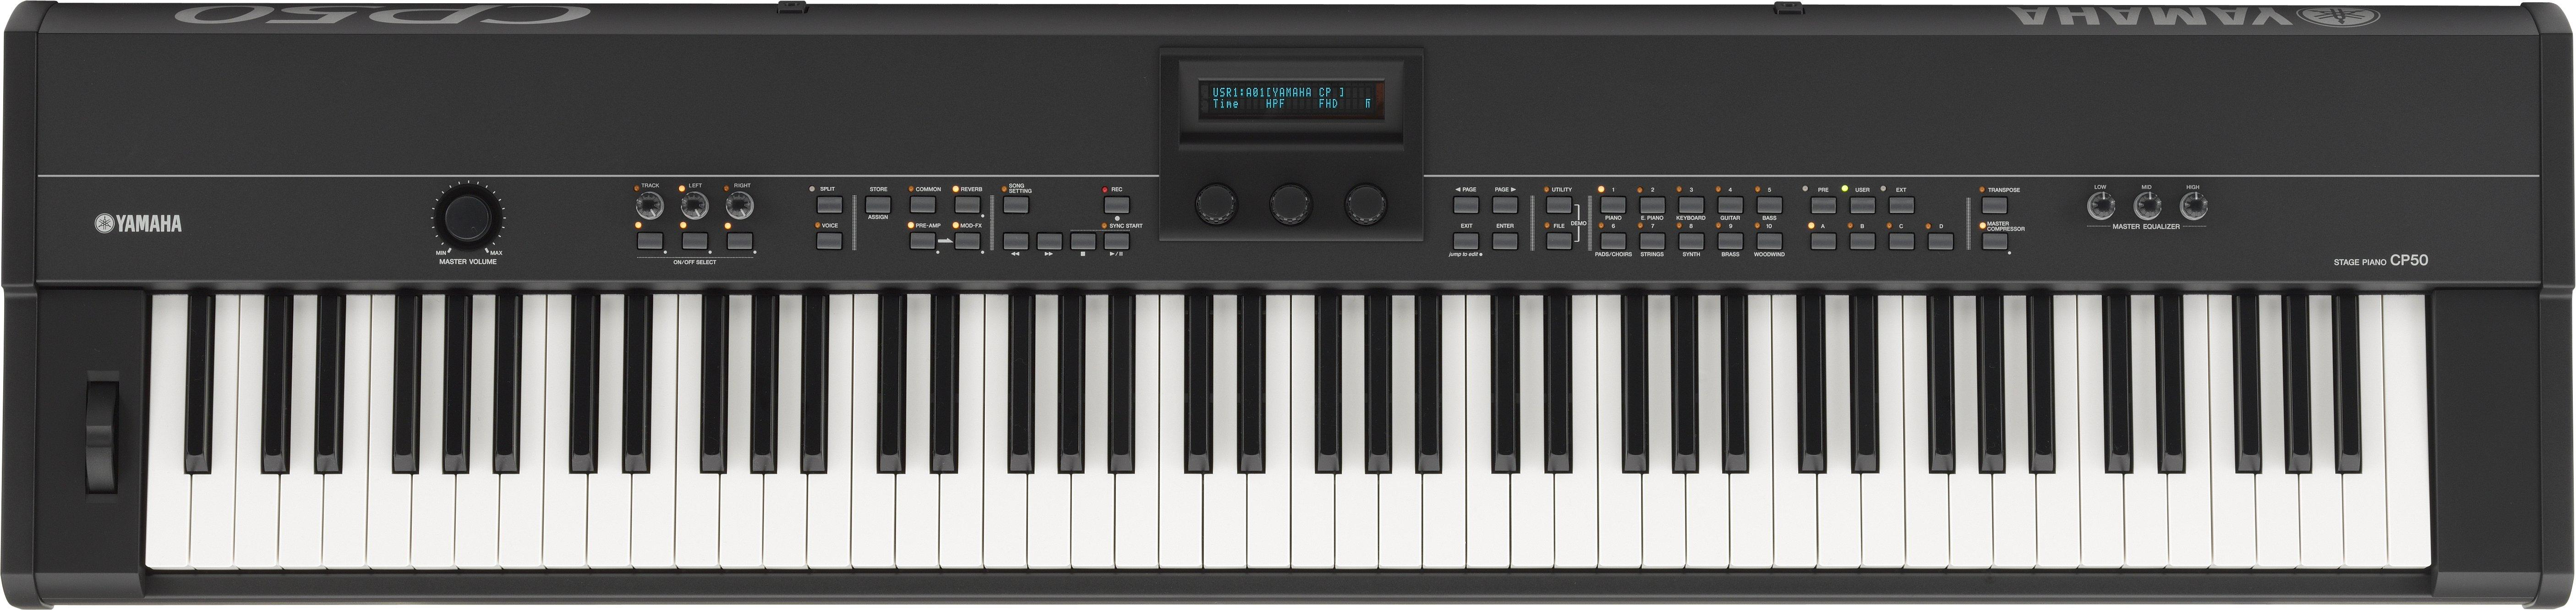 Usb device for p155 keyboard for Yamaha cp50 review